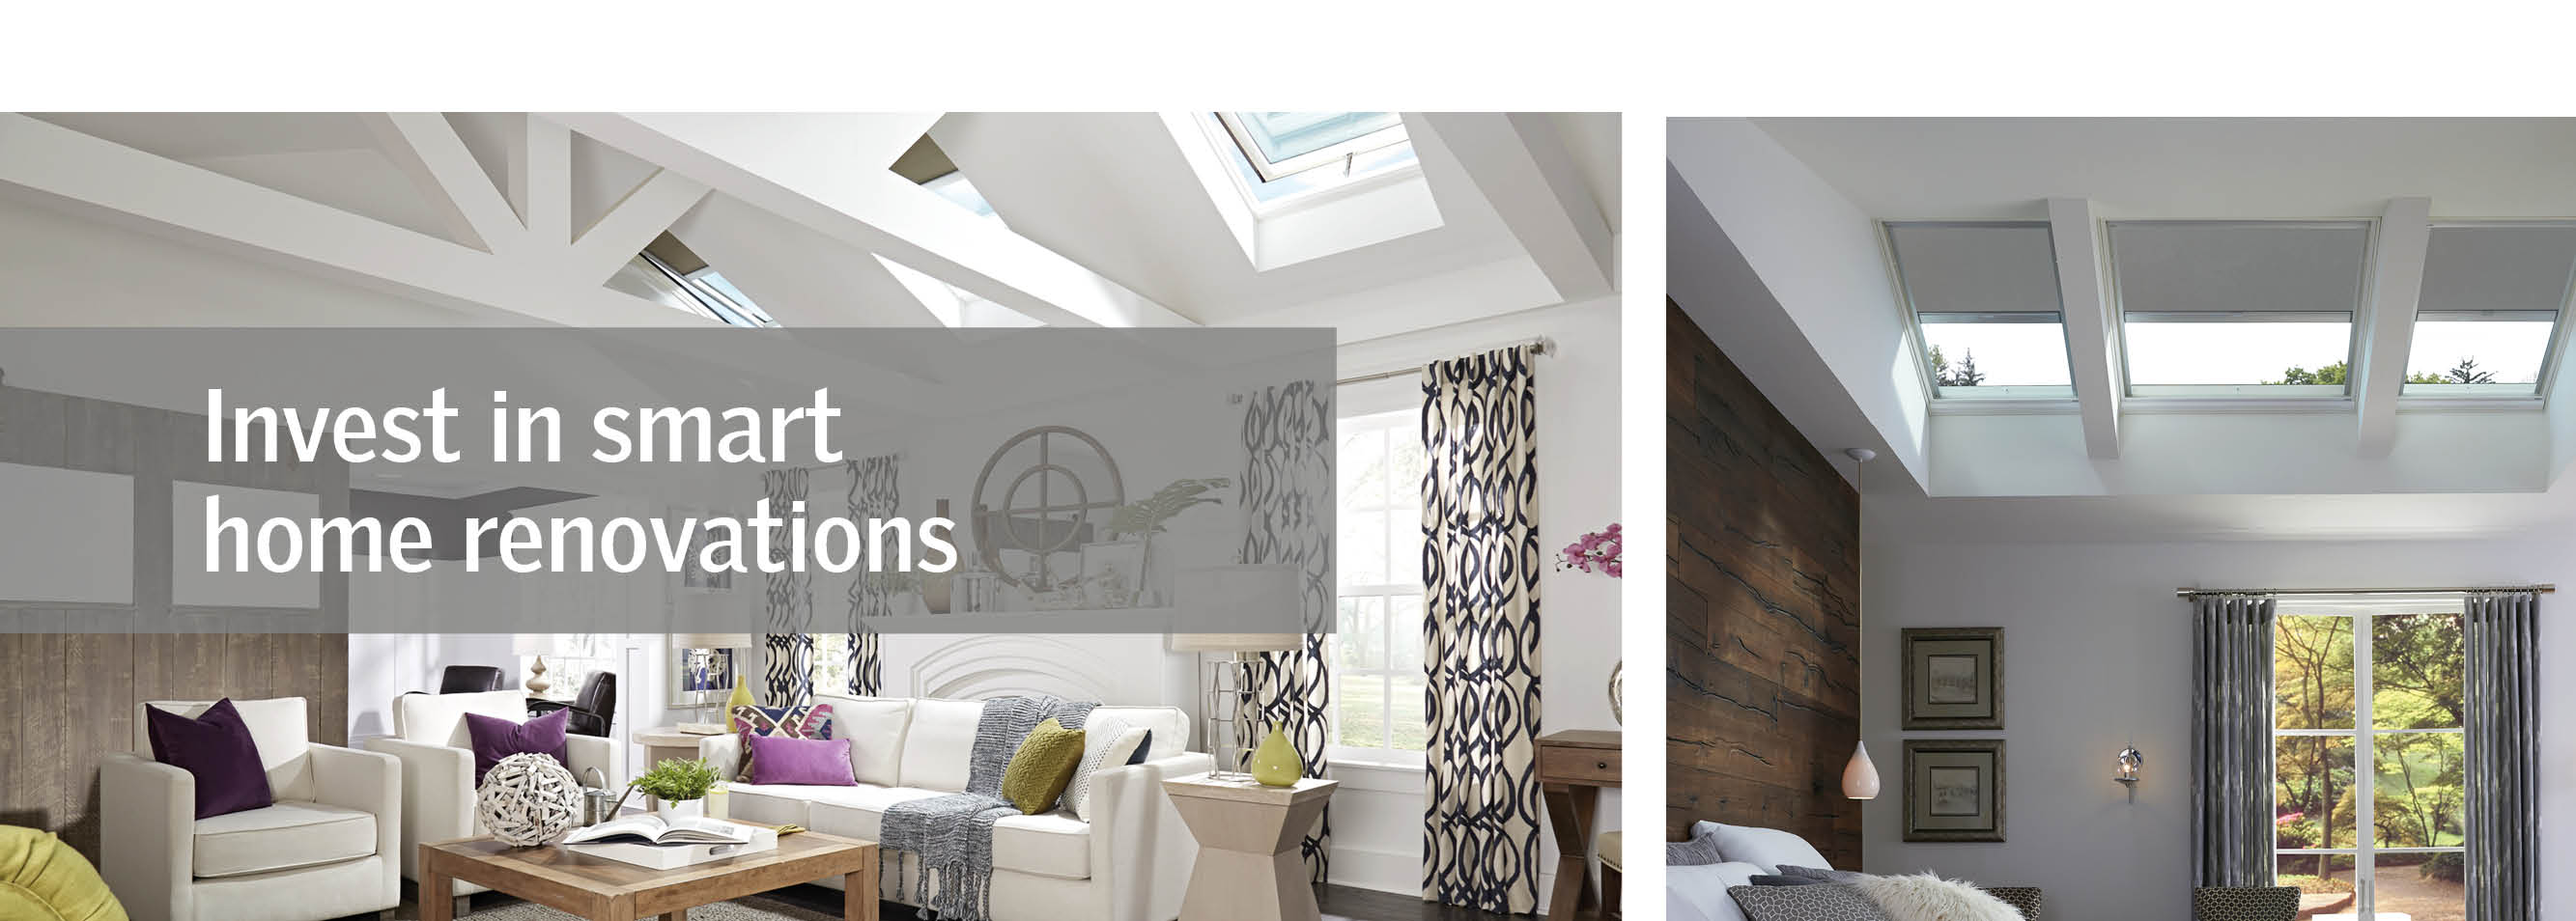 renovation velux free renovactive with renovation velux free sky lights with renovation velux. Black Bedroom Furniture Sets. Home Design Ideas